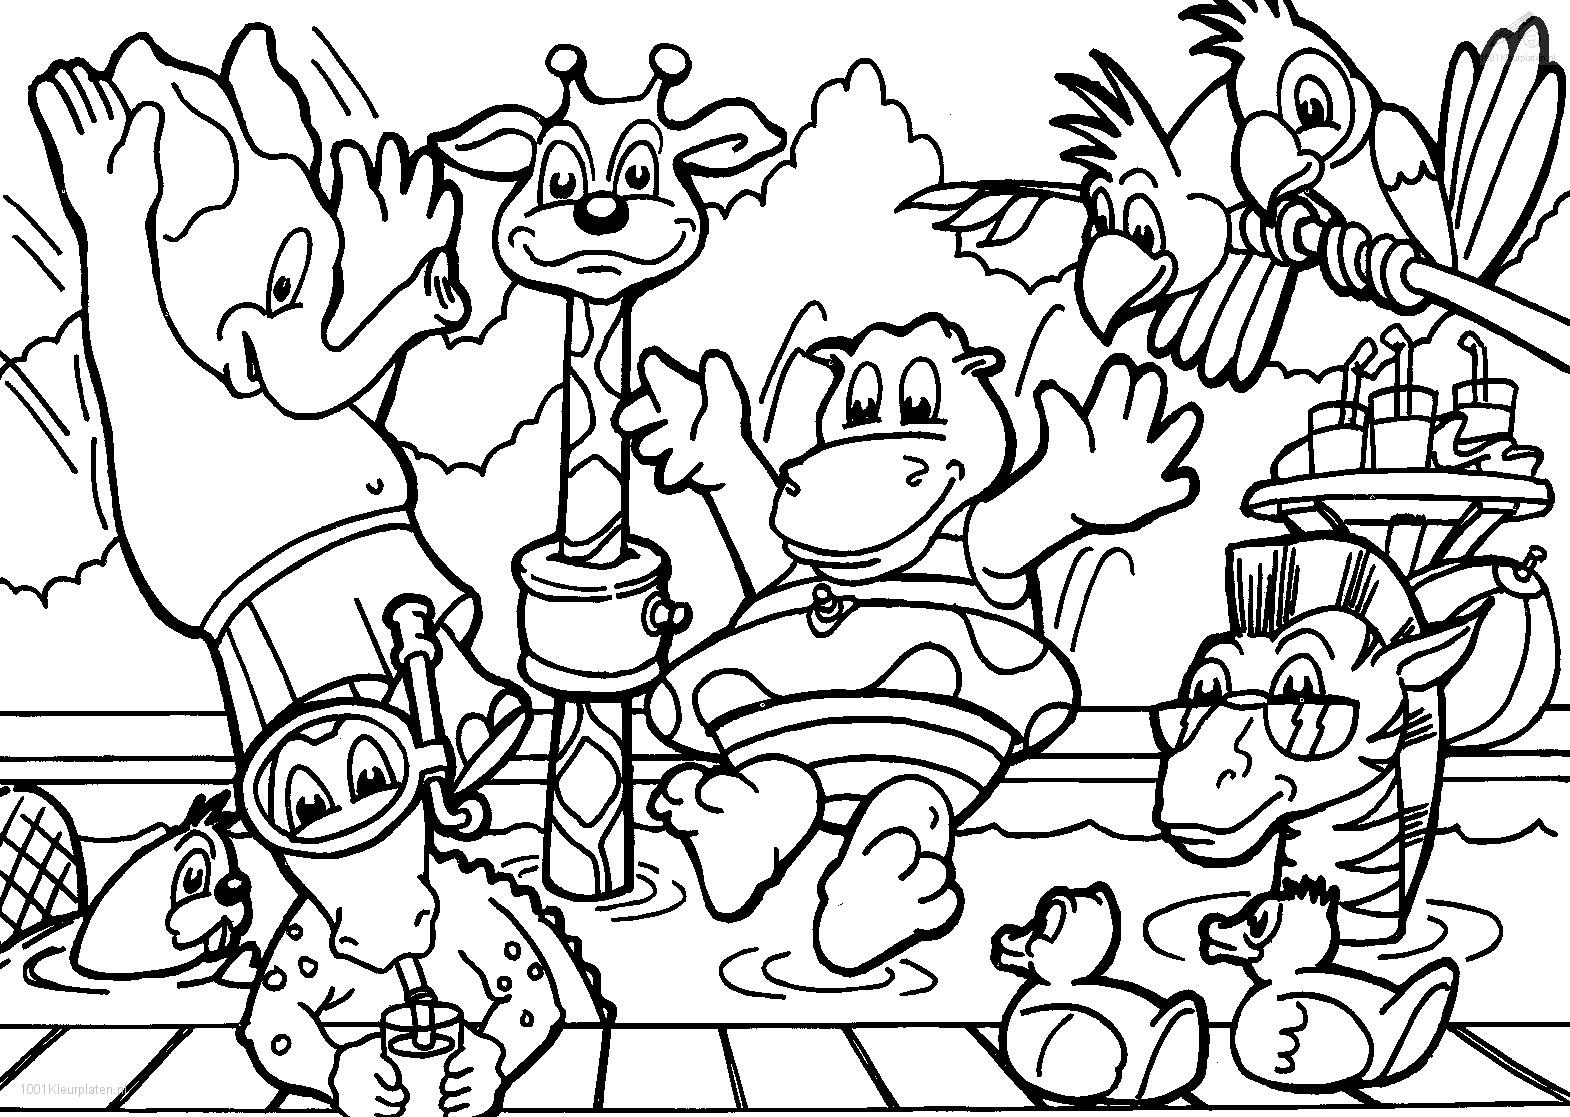 coloring the animal baby animals coloring pages to kids coloring animal the